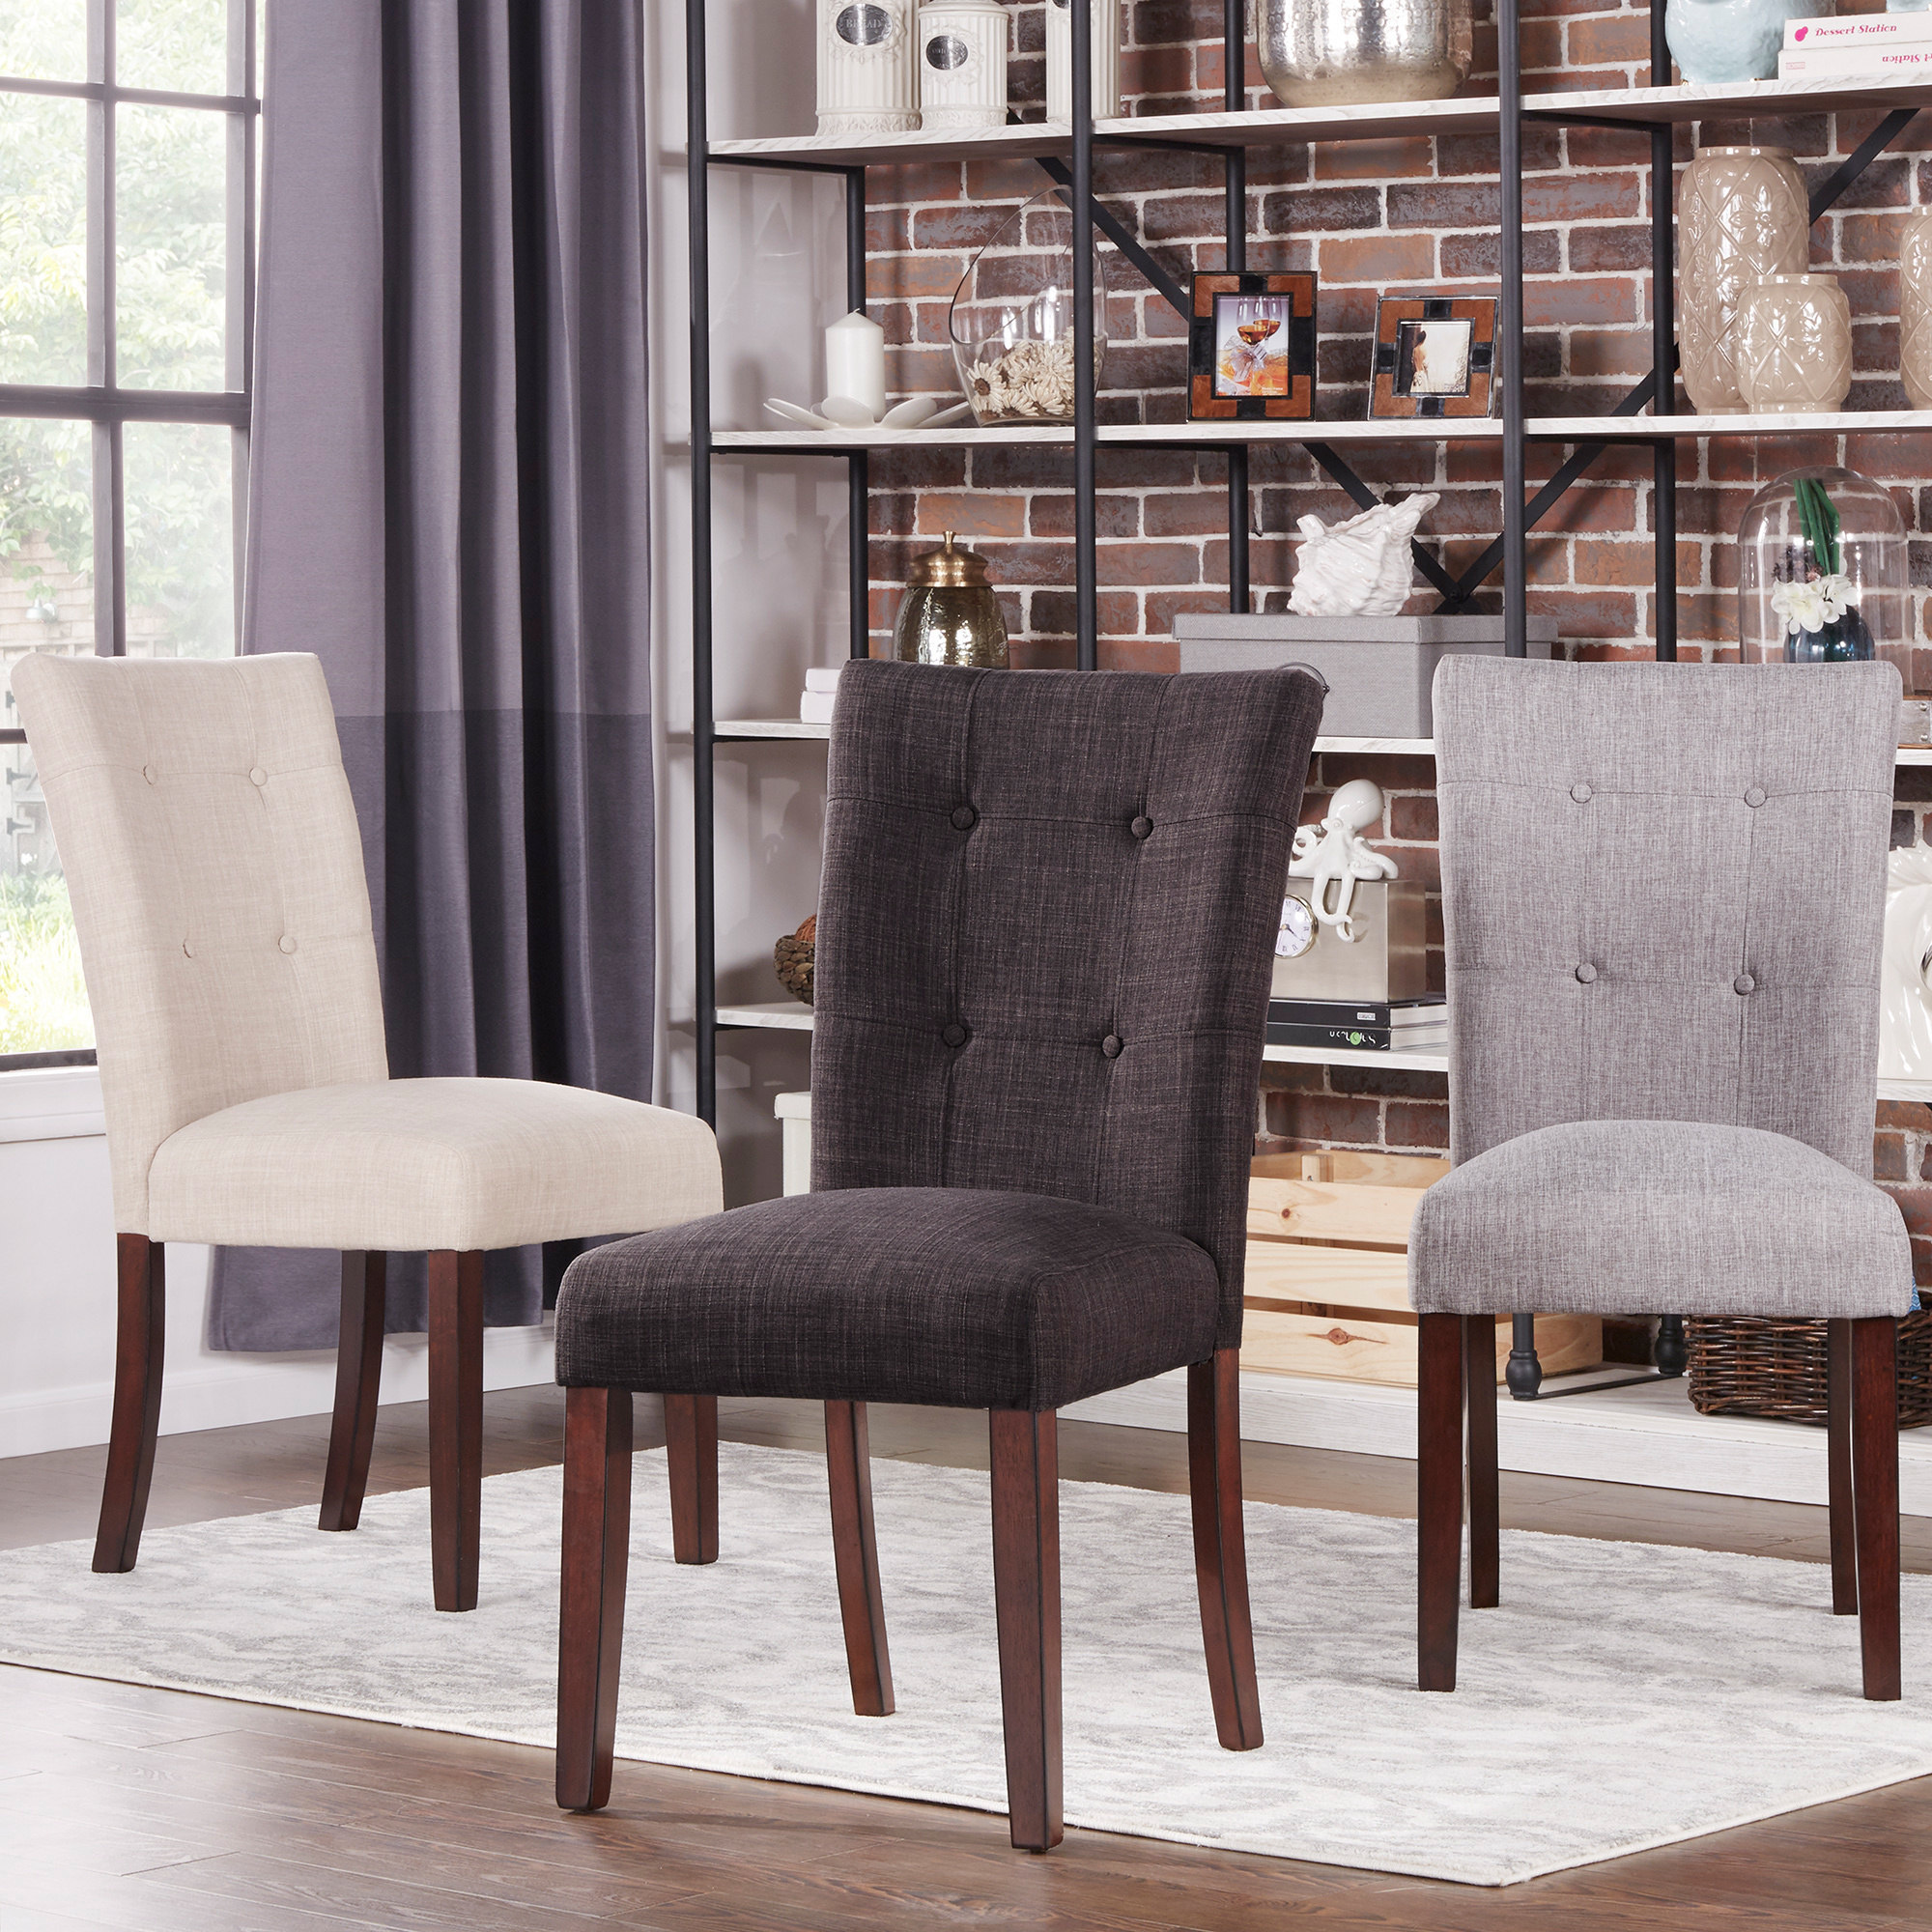 iNSPIRE Q Hutton Upholstered Dining Chairs Set